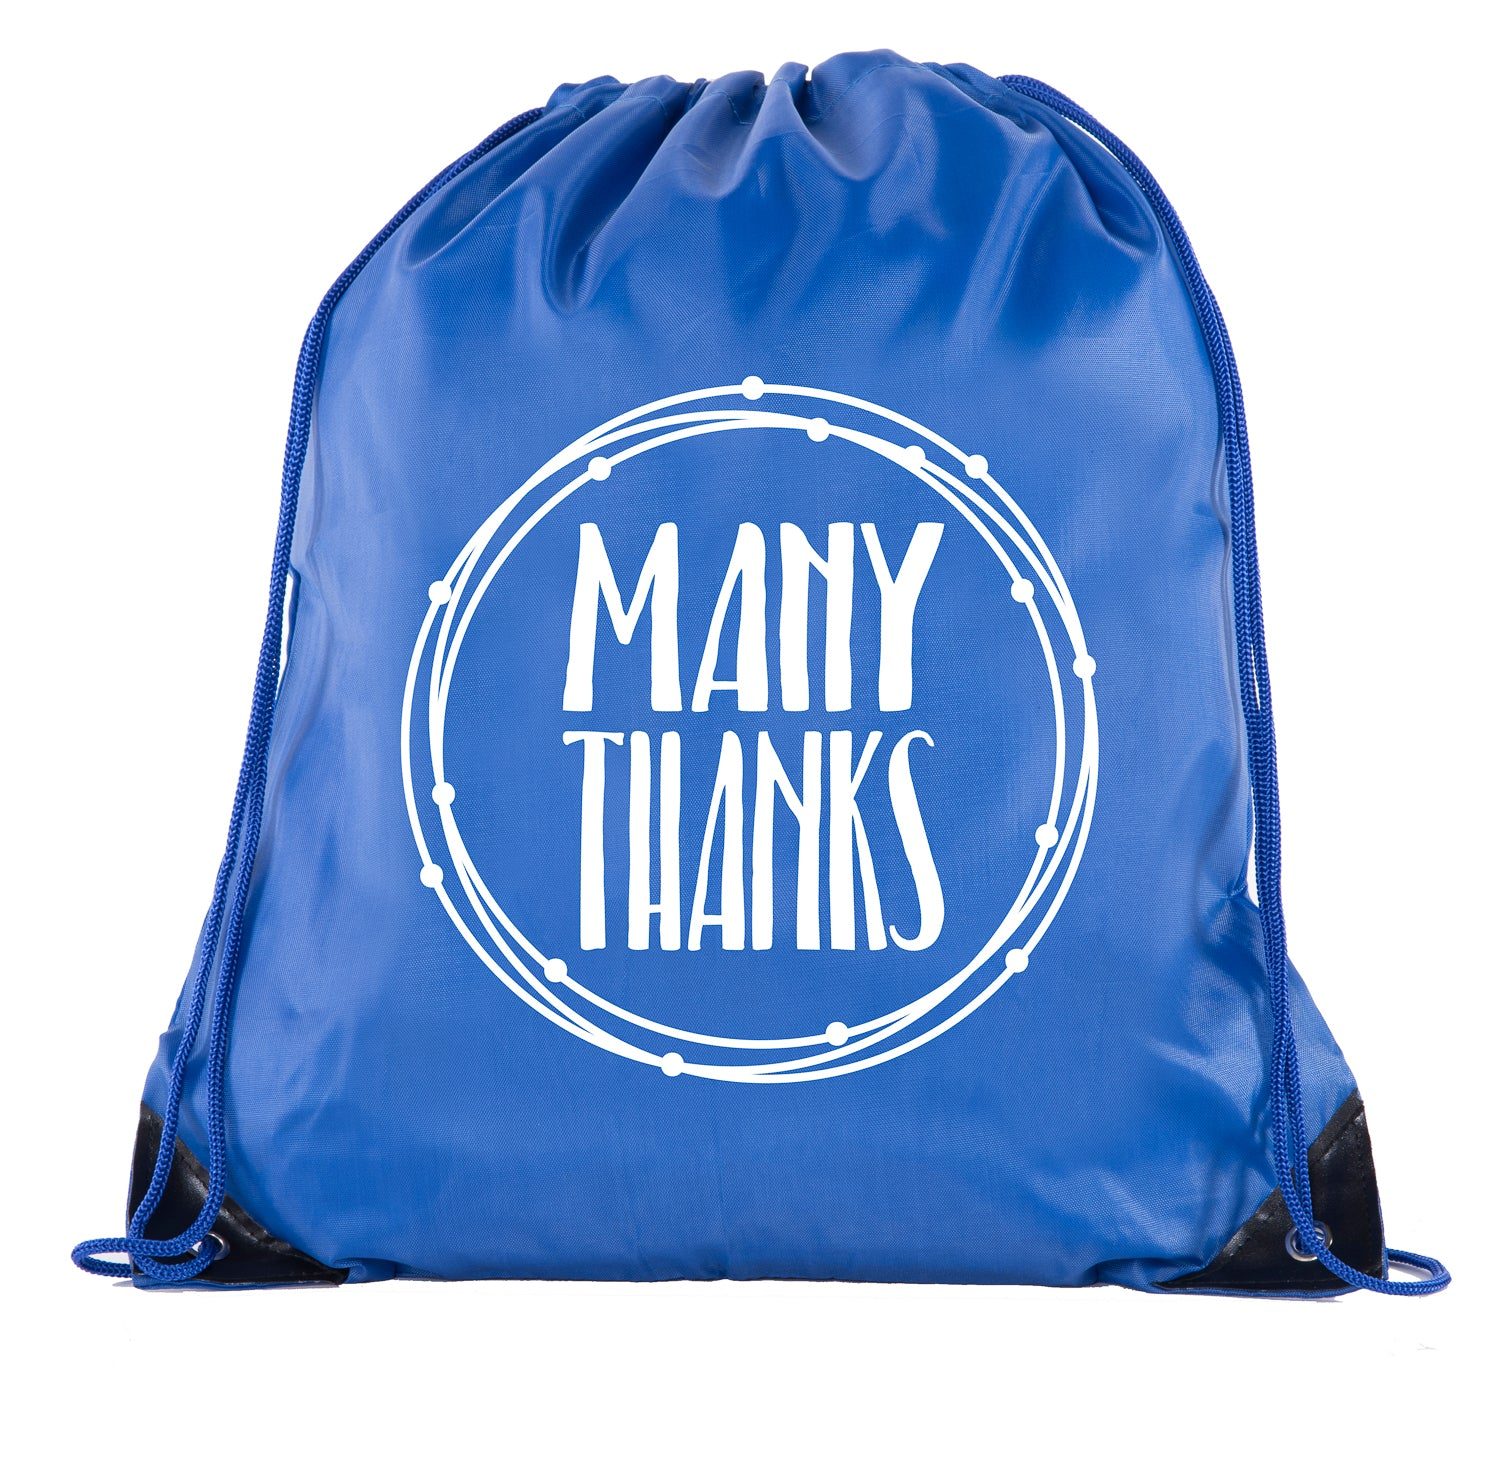 Accessory - Thank You Favor Bags, Reusable Drawstring Gift Bags - Circle